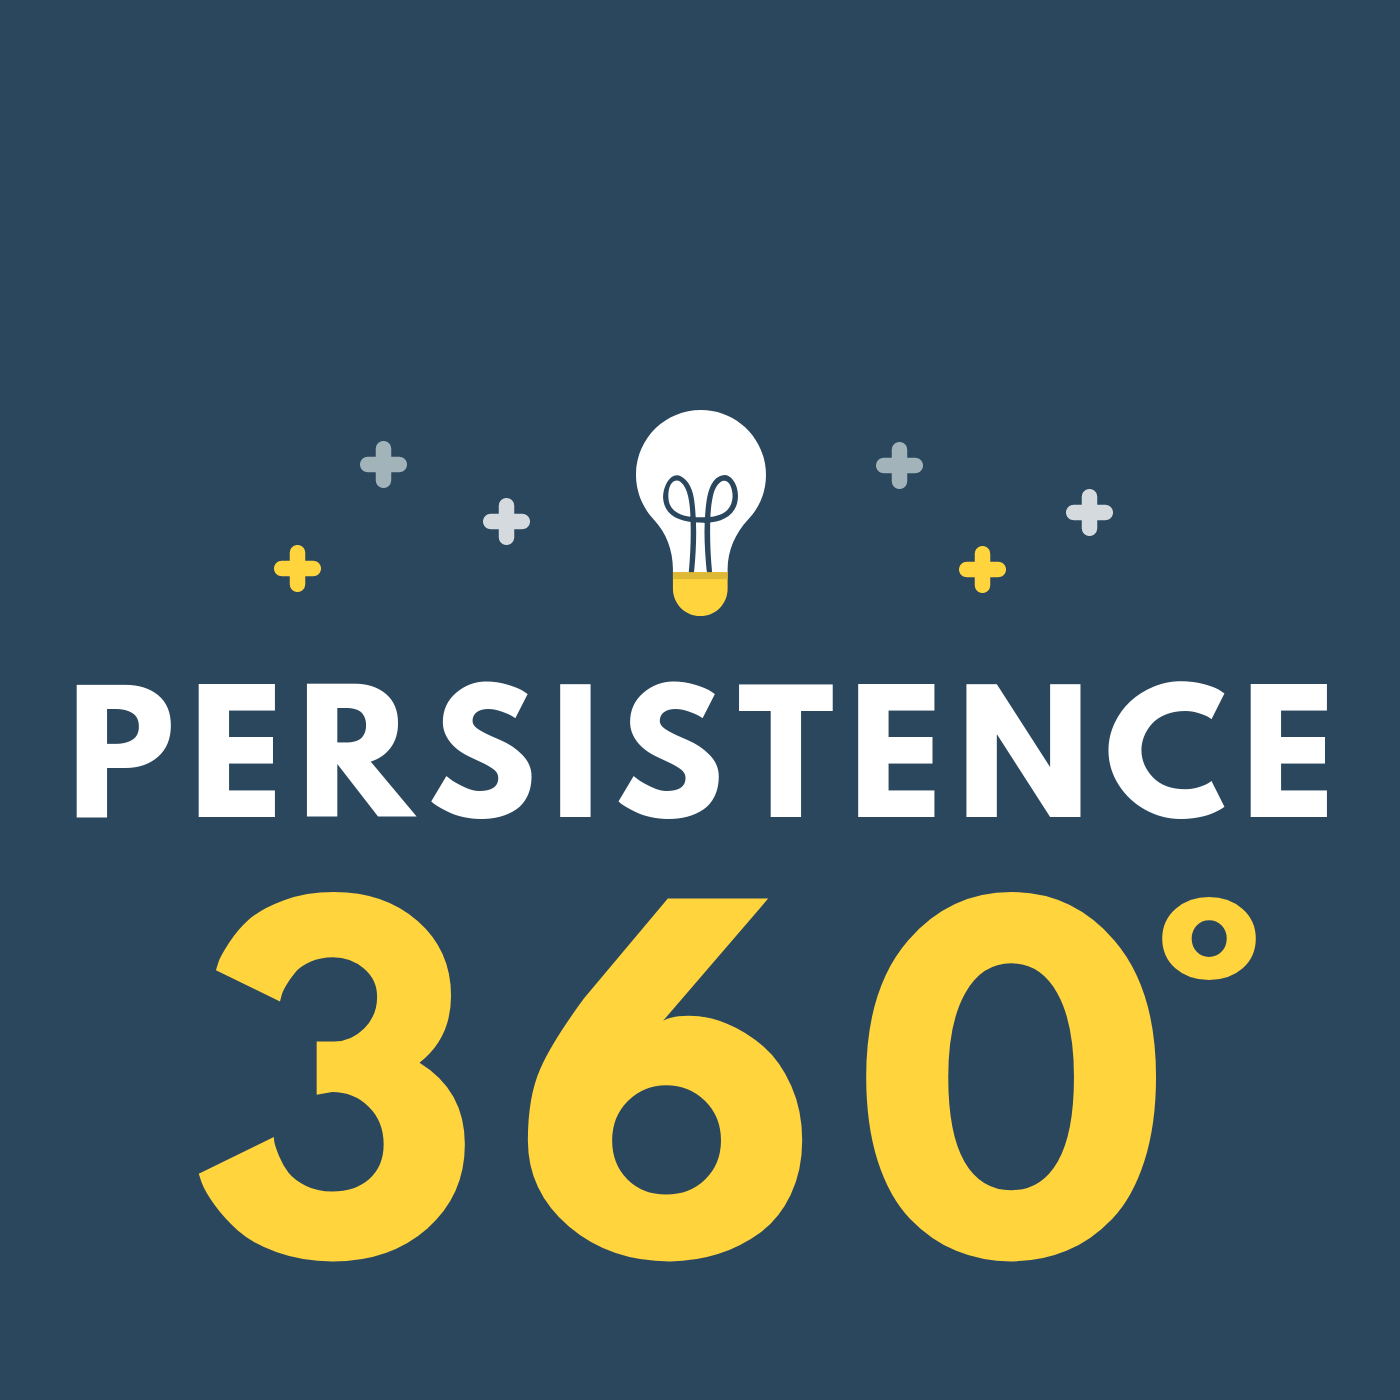 Persistence 360°